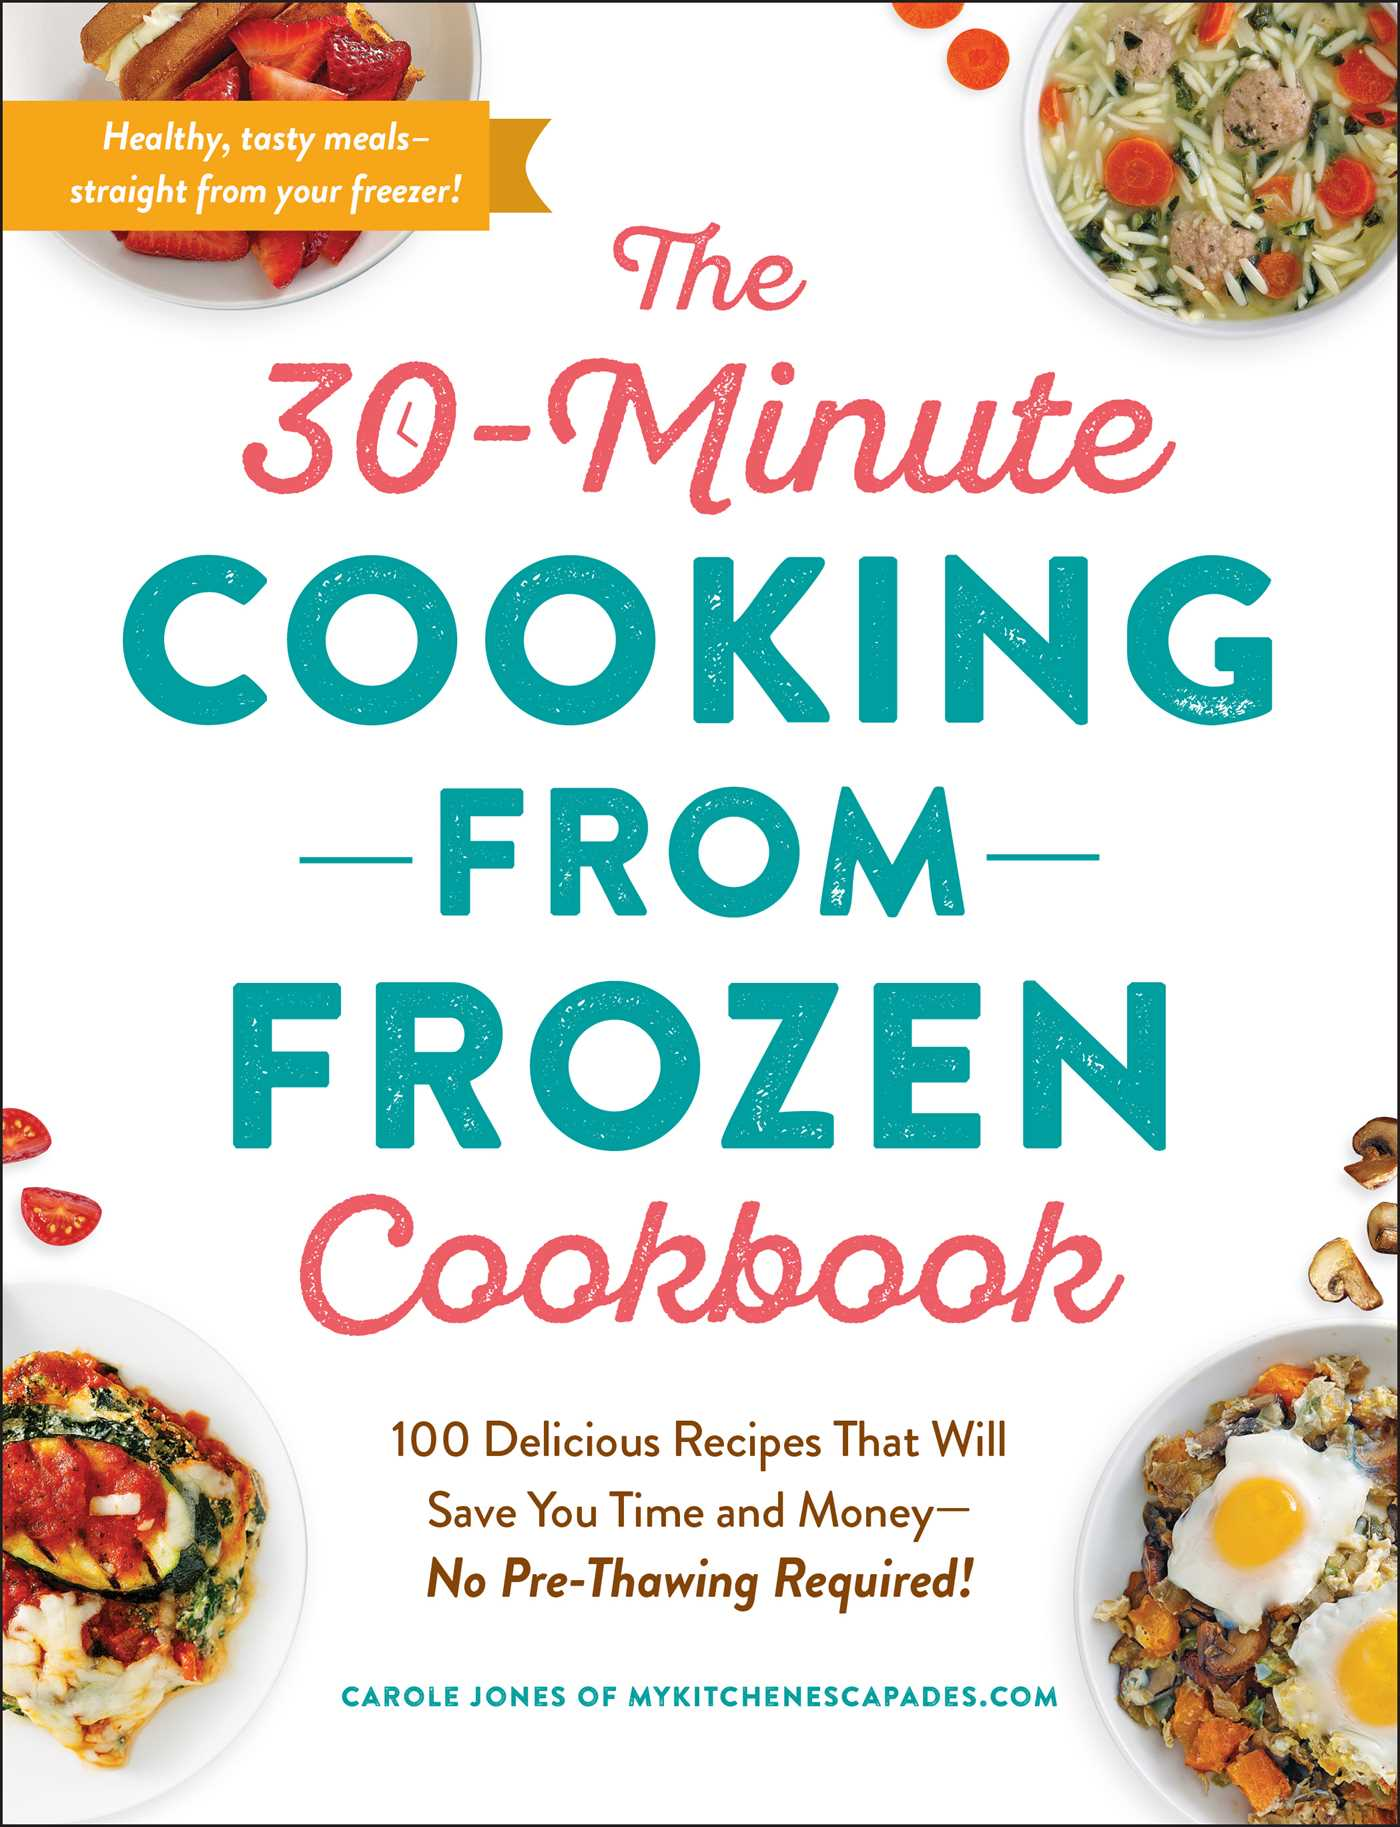 [PDF] [EPUB] The 30-Minute Cooking from Frozen Cookbook: 100 Delicious Recipes That Will Save You Time and Money—No Pre-Thawing Required! Download by Carole Jones